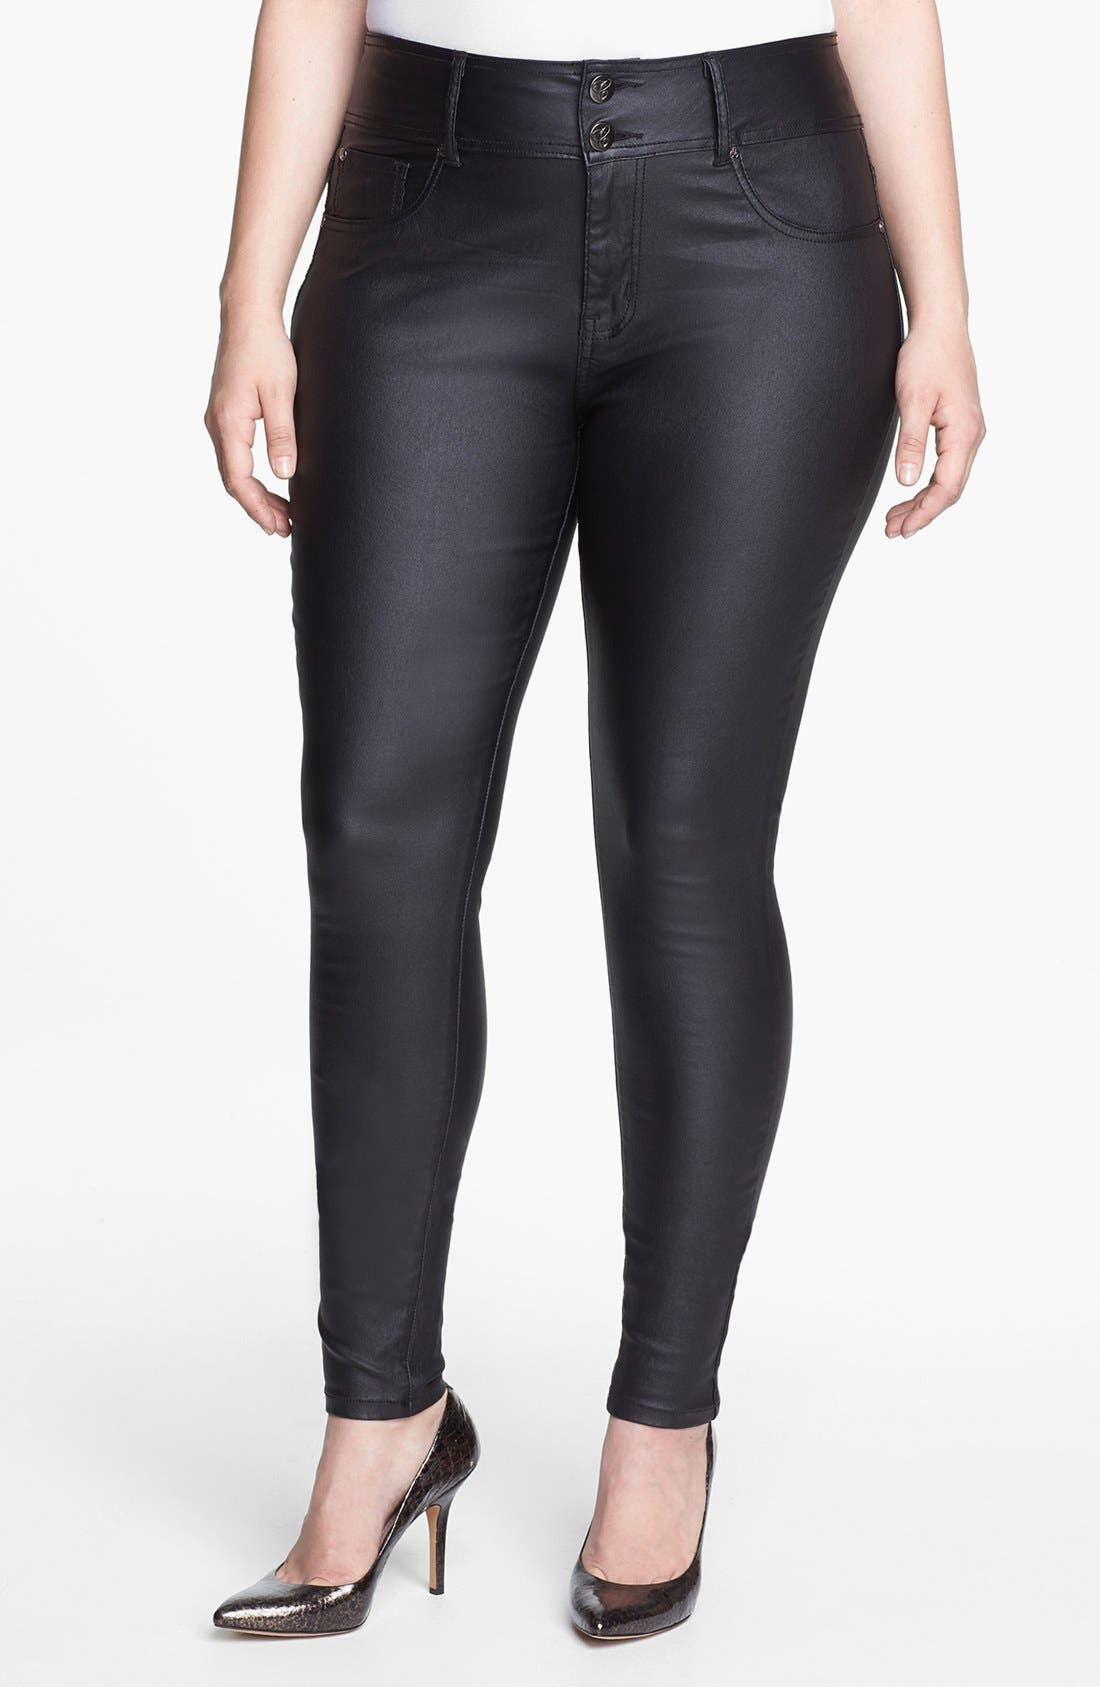 Wet Look Stretch Skinny Jeans,                         Main,                         color, Black